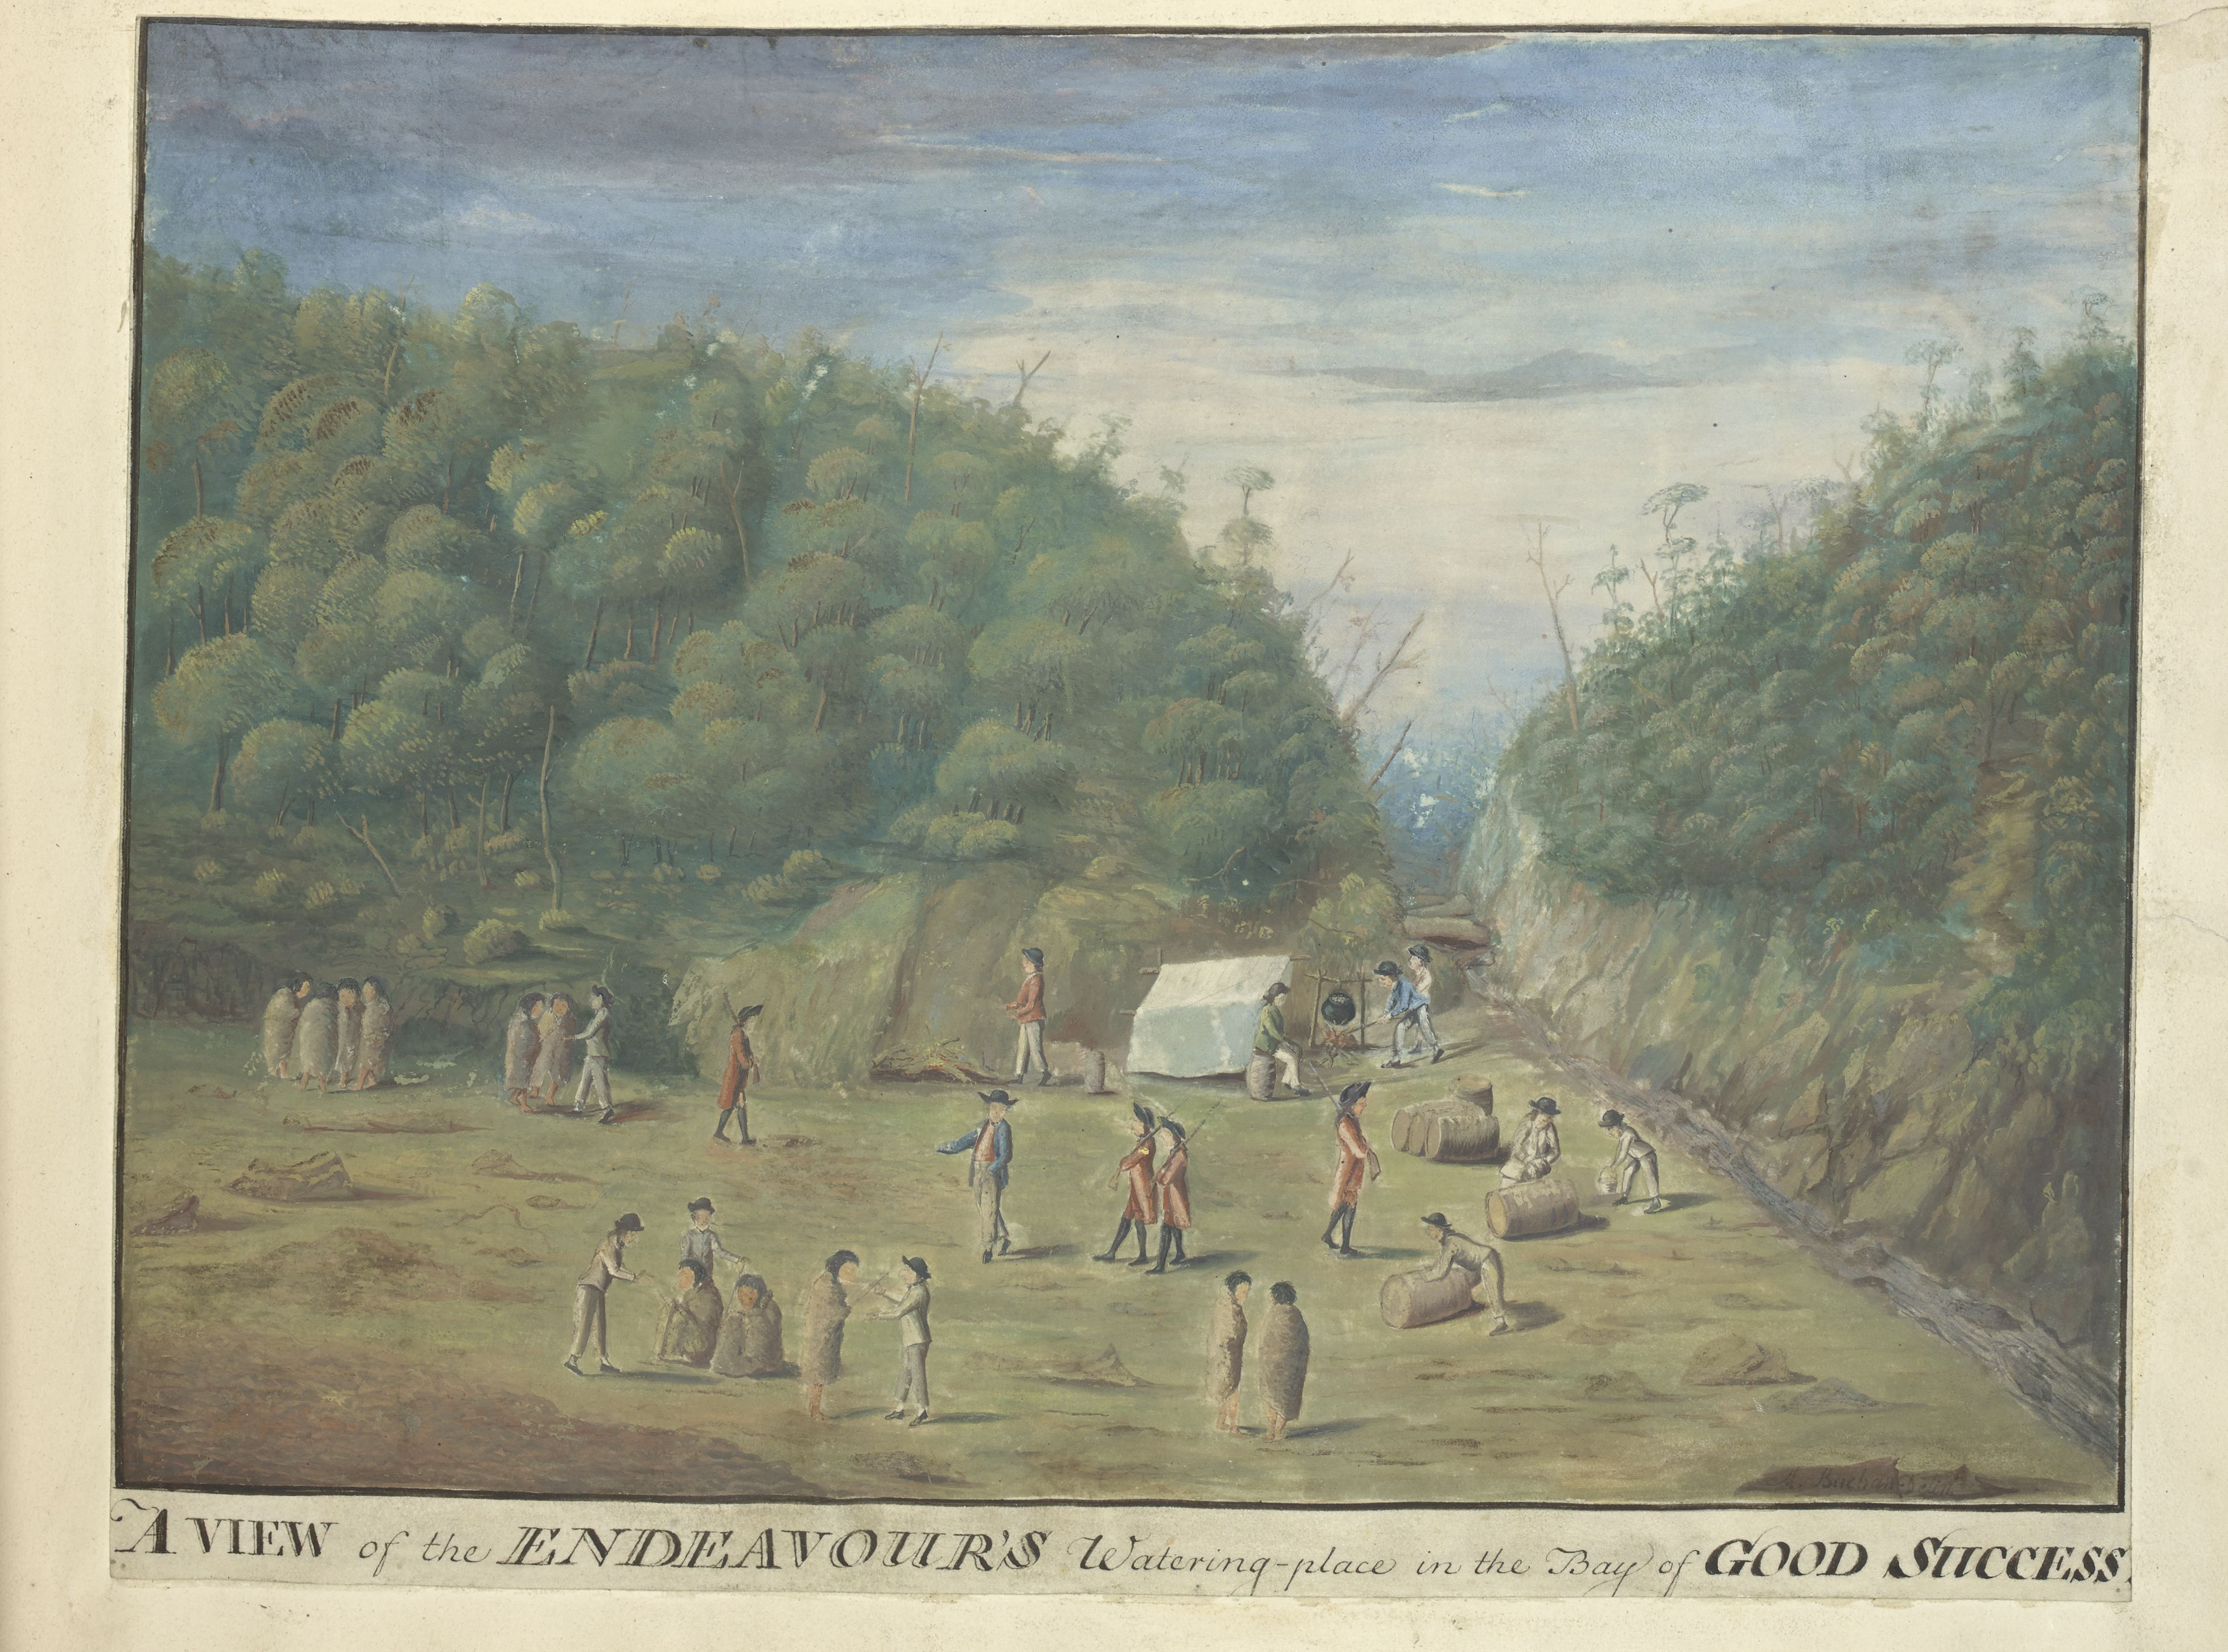 'A View of the Endeavour's Watering Place in the Bay of Good Success' by Alexander Buchan, 1769 (c) British Library Board